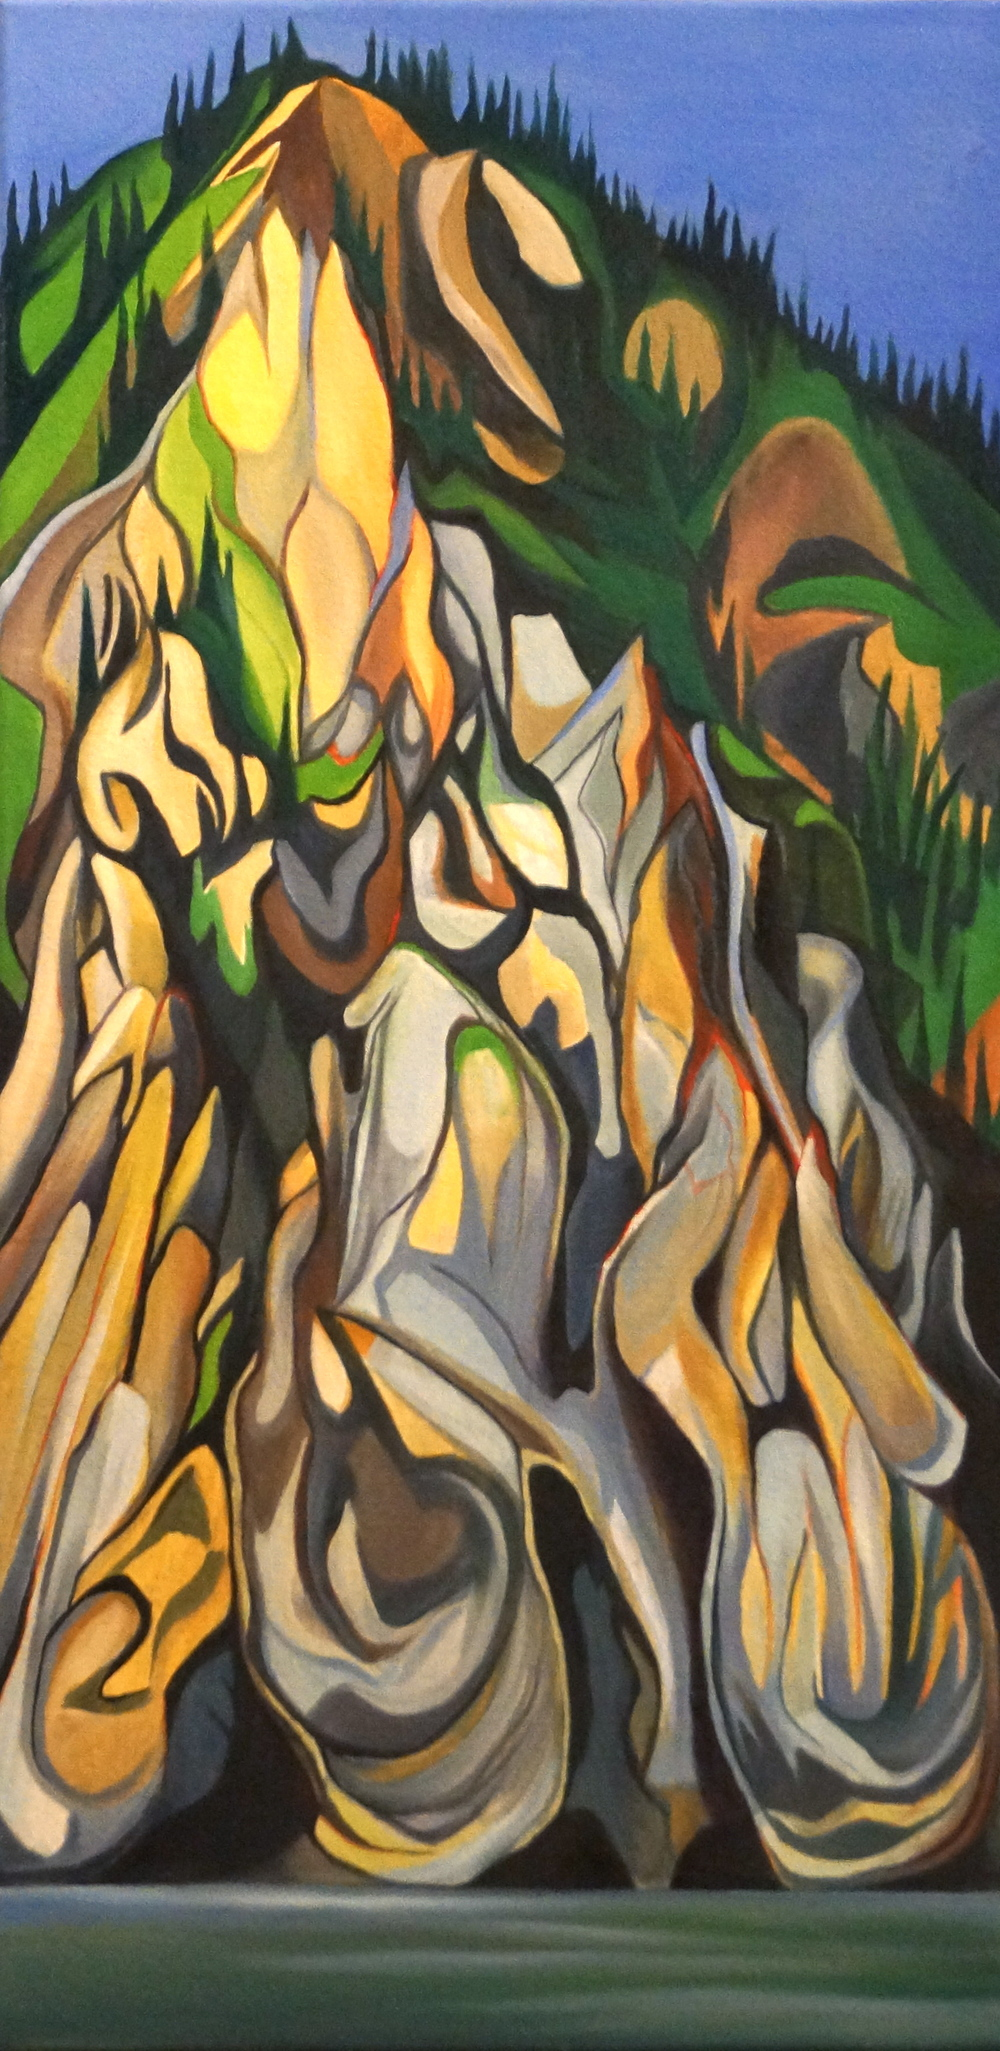 "Takoma Bluff -  Oil and acrylic on canvas - 30"" x 15"" - 2013"